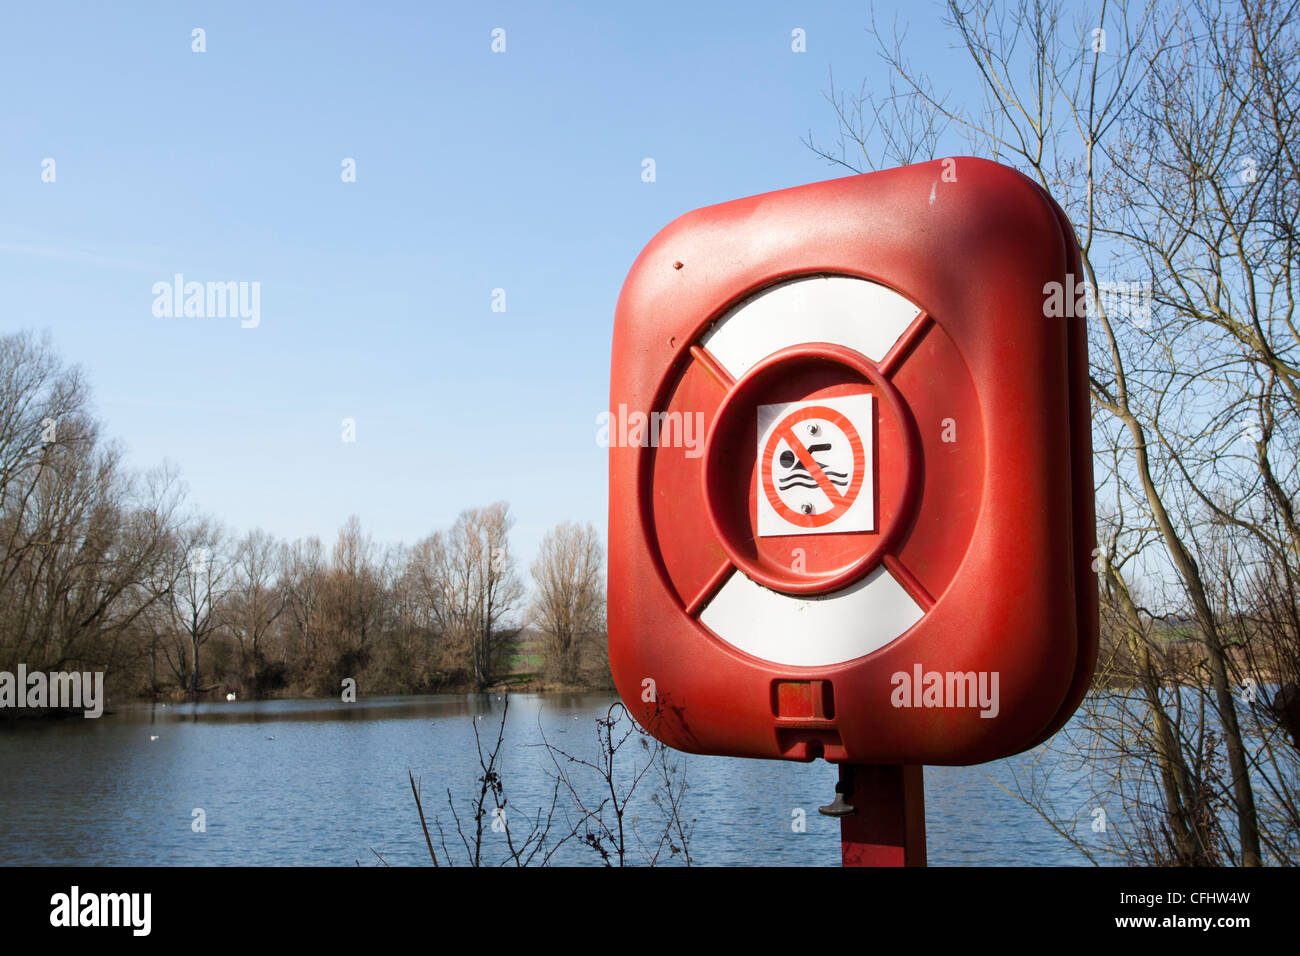 Red life saving equipment with a no swimming sign beside a pond/lake Northamptonshire, England, UK - Stock Image